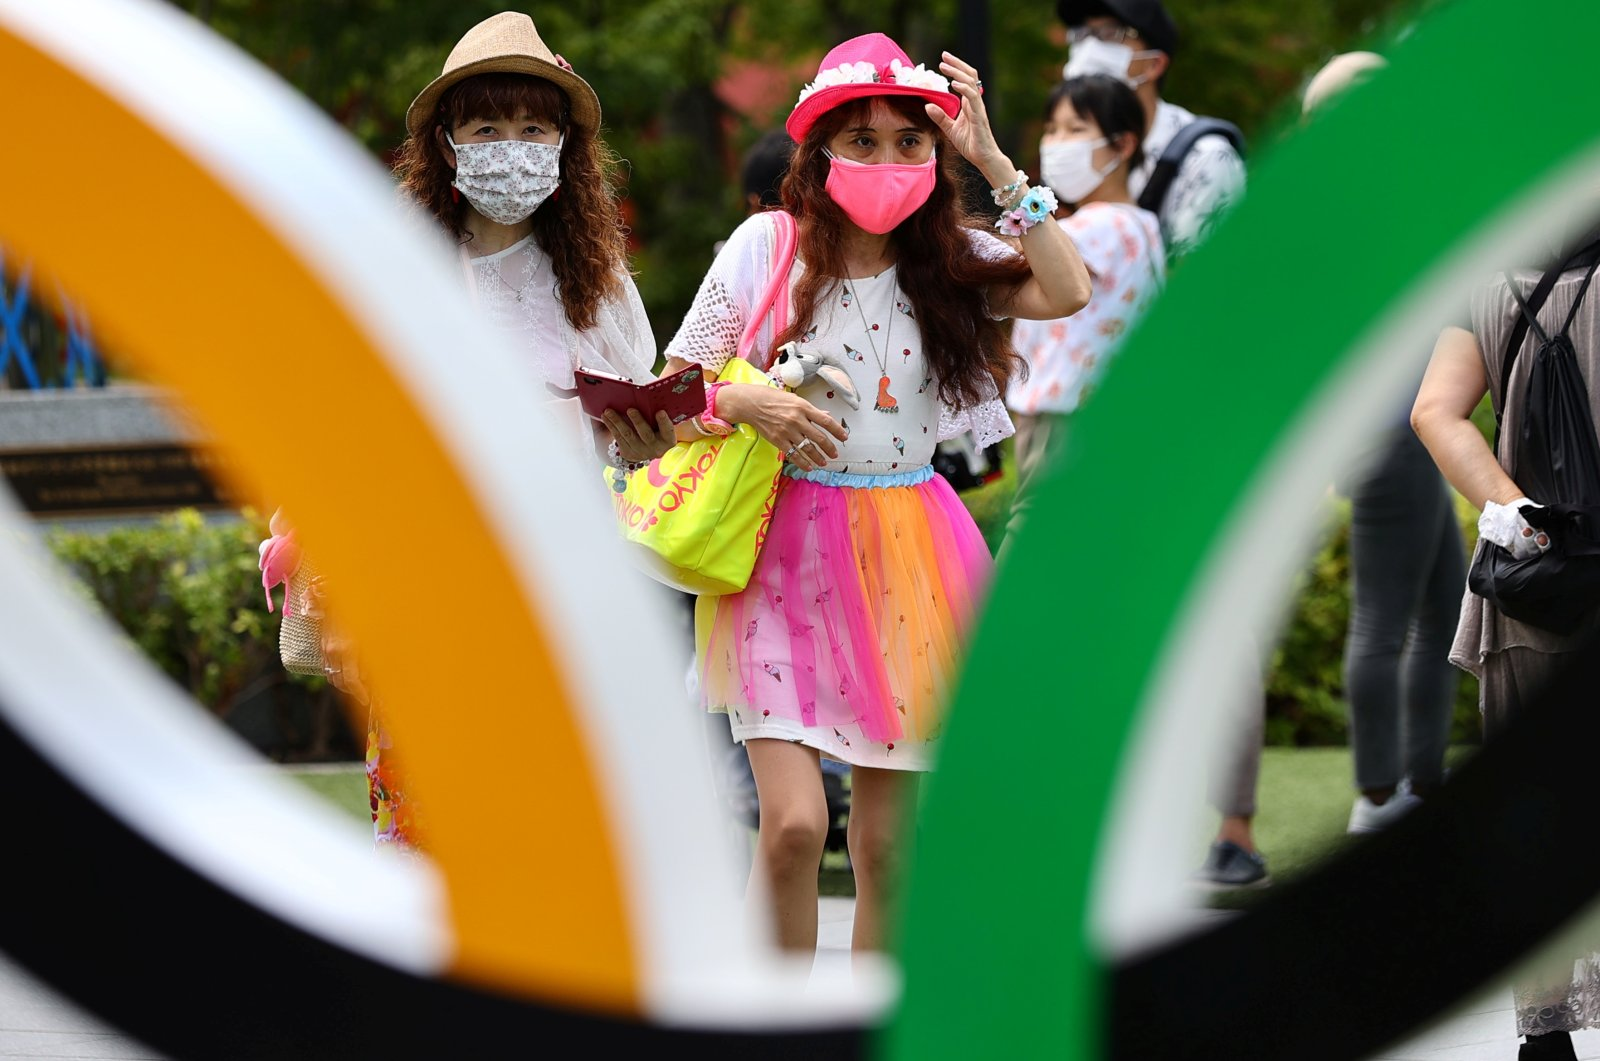 People in protective face masks against COVID-19 visit an Olympic Ring outside the National Stadium, the main venue of the Tokyo 2020 Olympic Games, Tokyo, Japan, Aug. 3, 2021. (Reuters Photo)